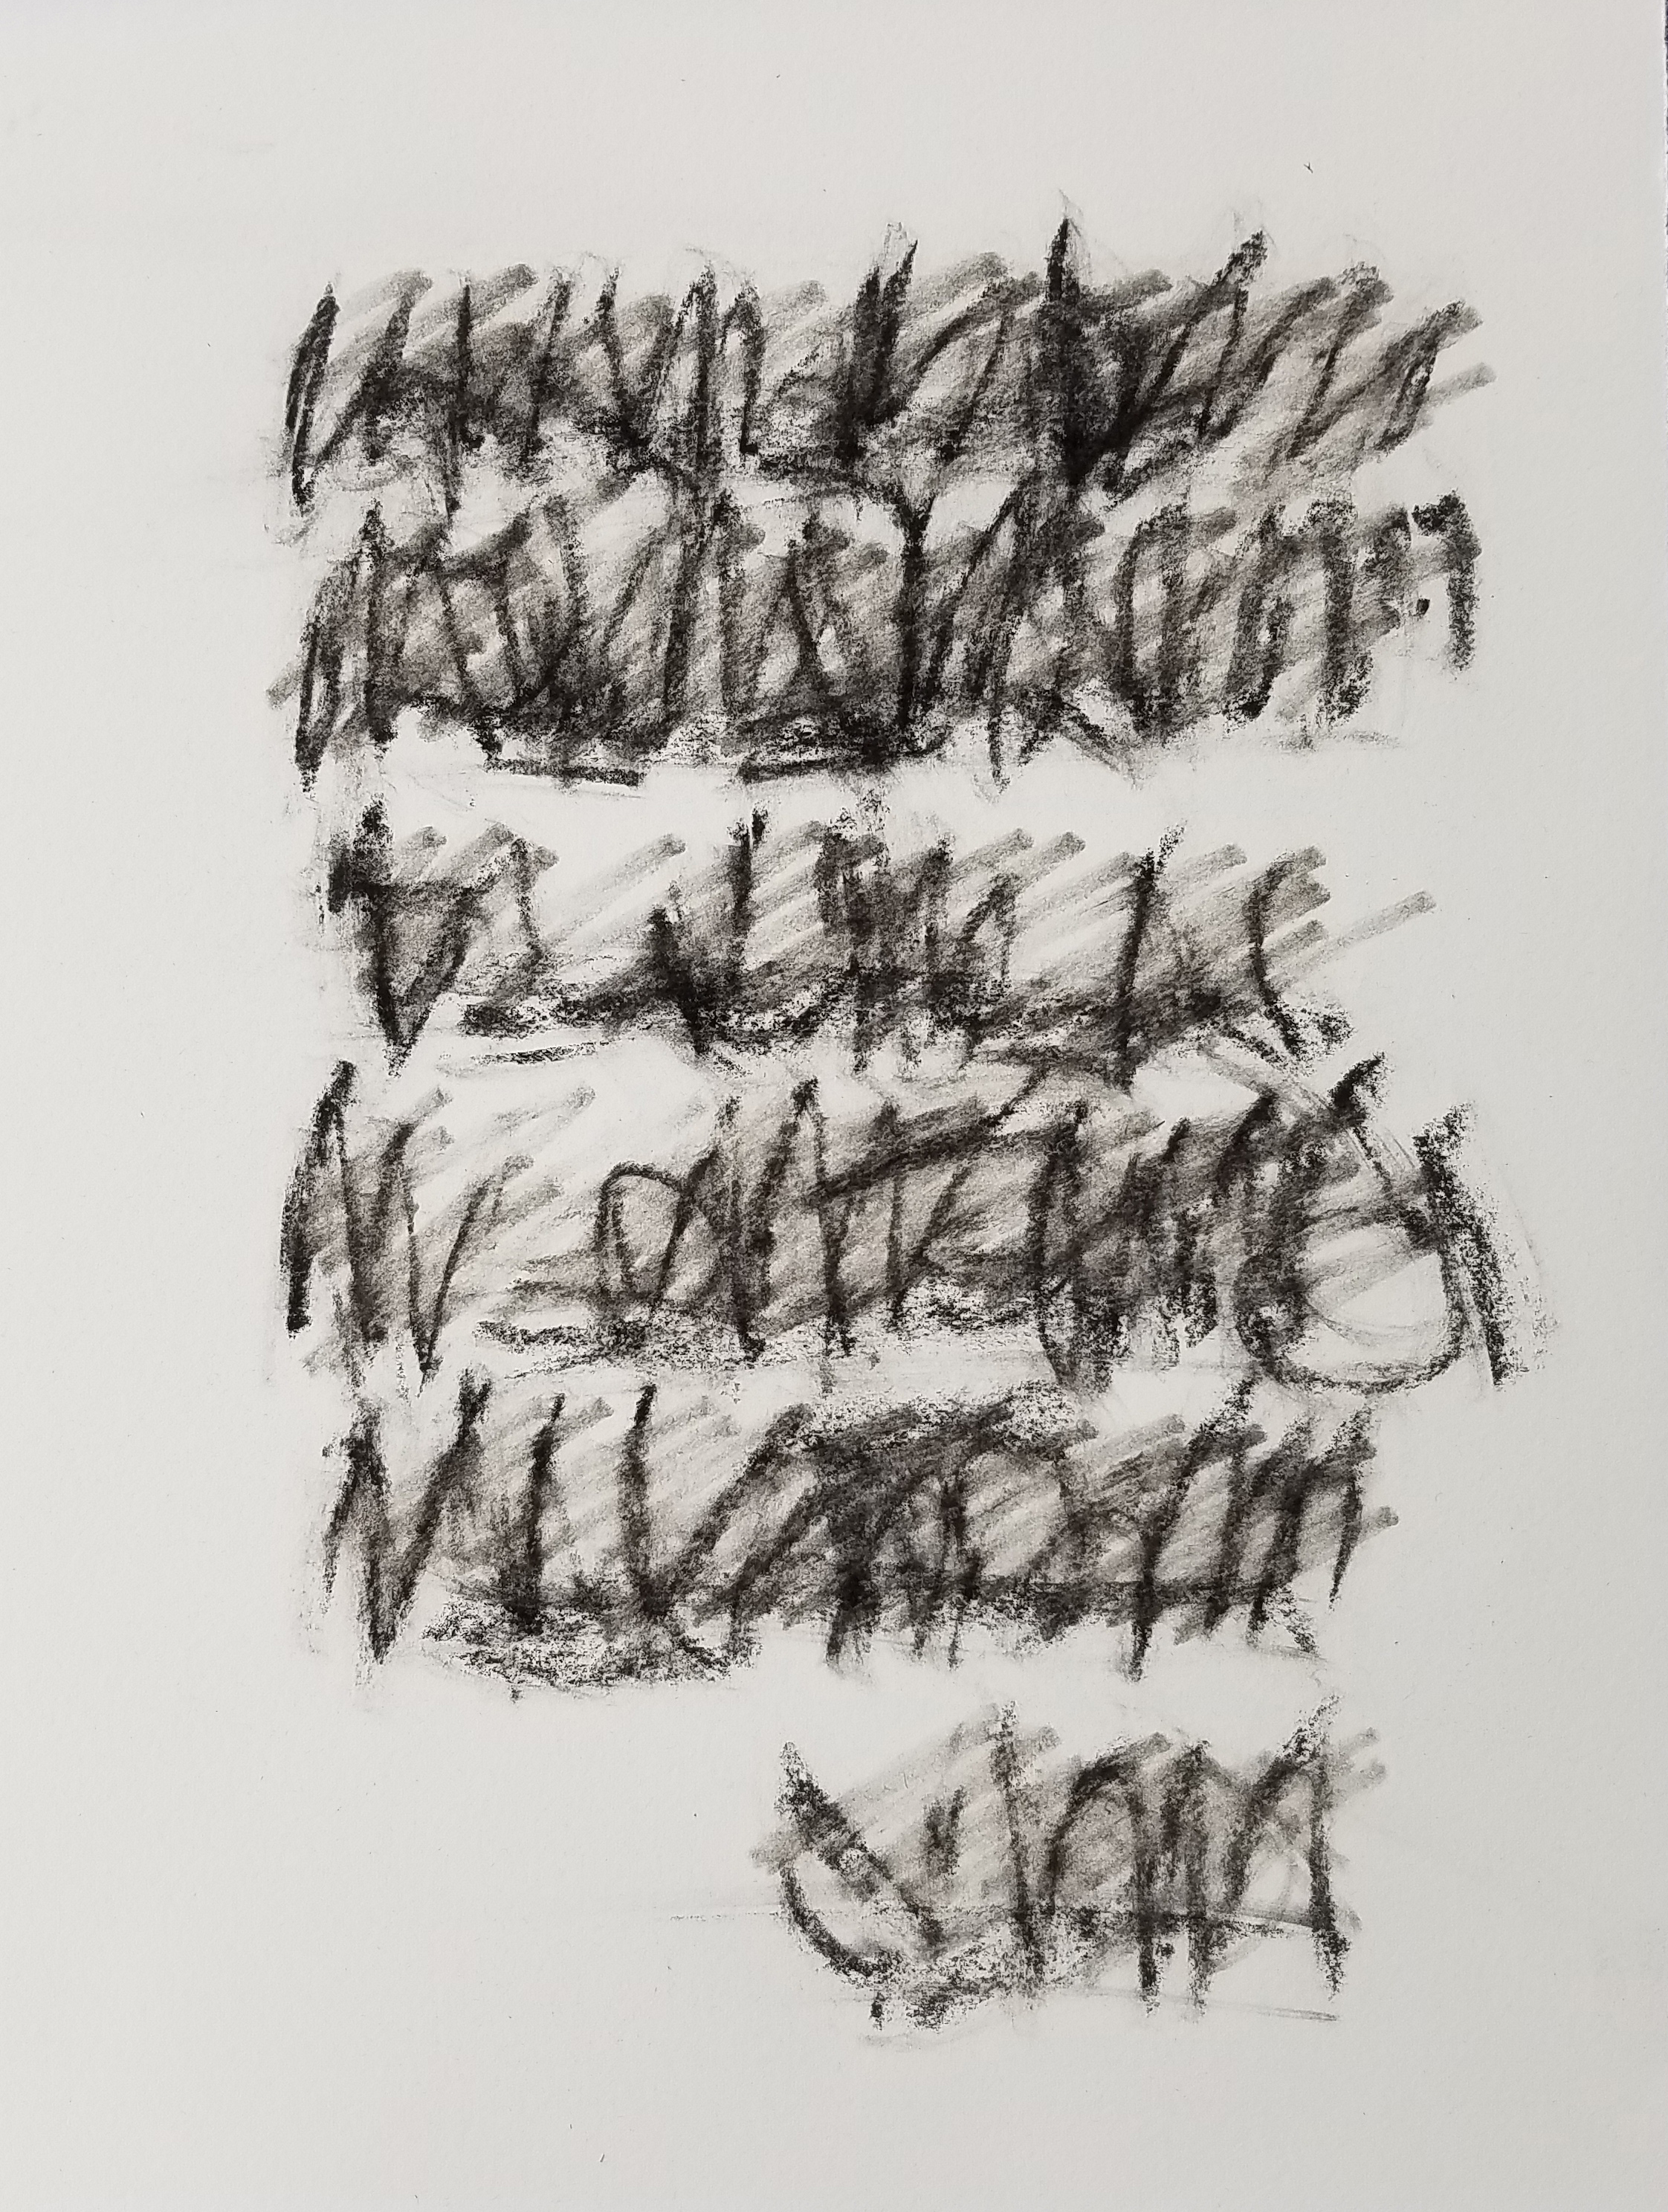 Letter to Andrew #17, Charcoal on paper